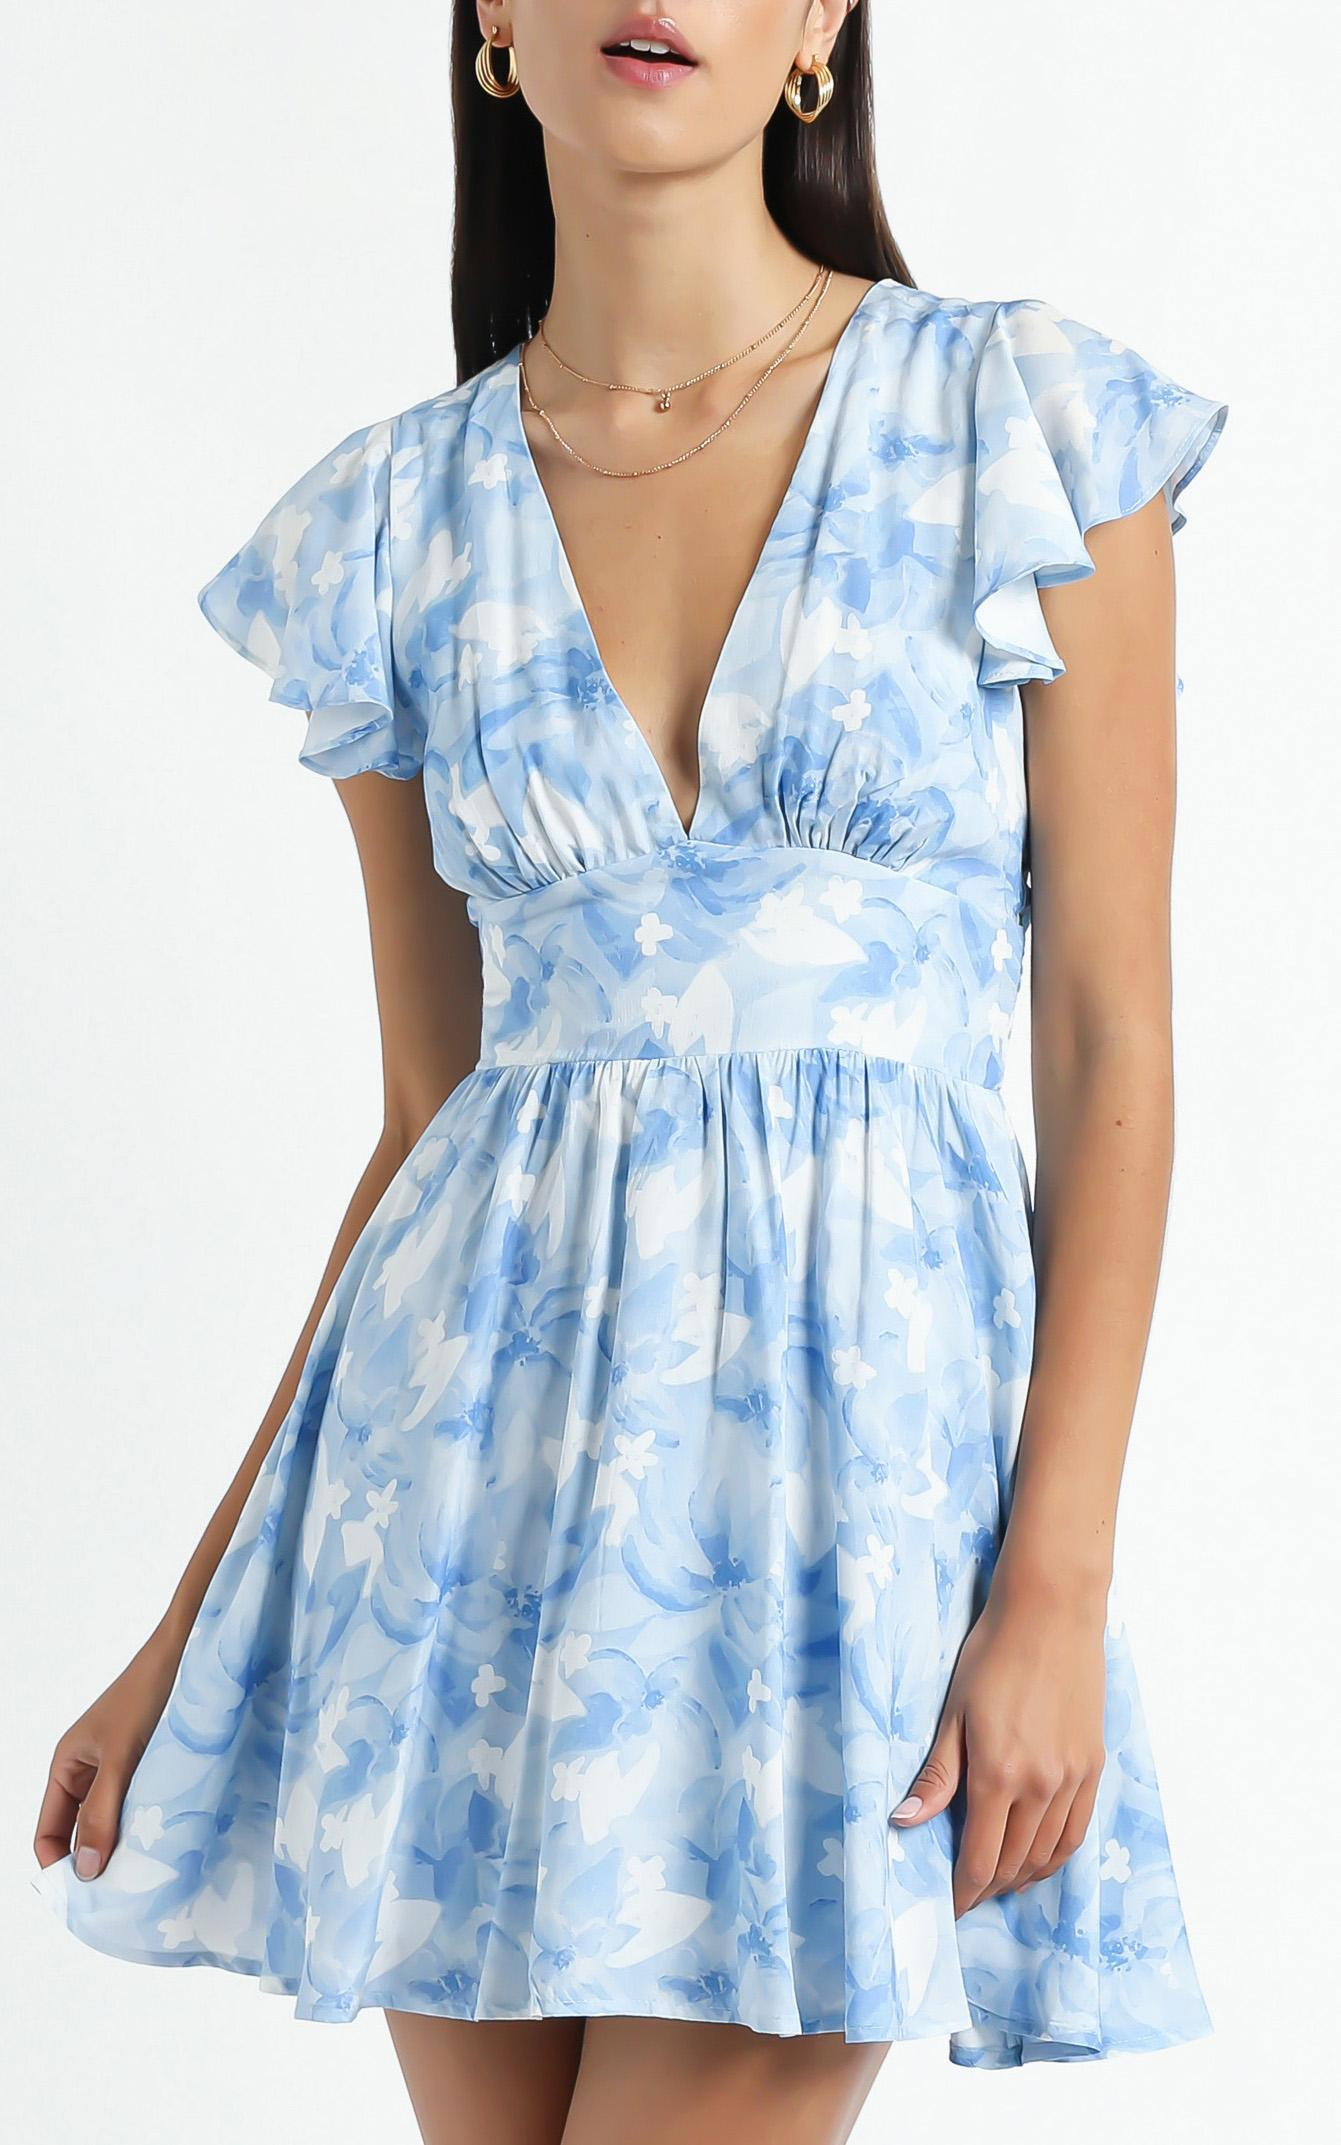 Dia Dress in Cloudy Floral - 6 (XS), Blue, hi-res image number null